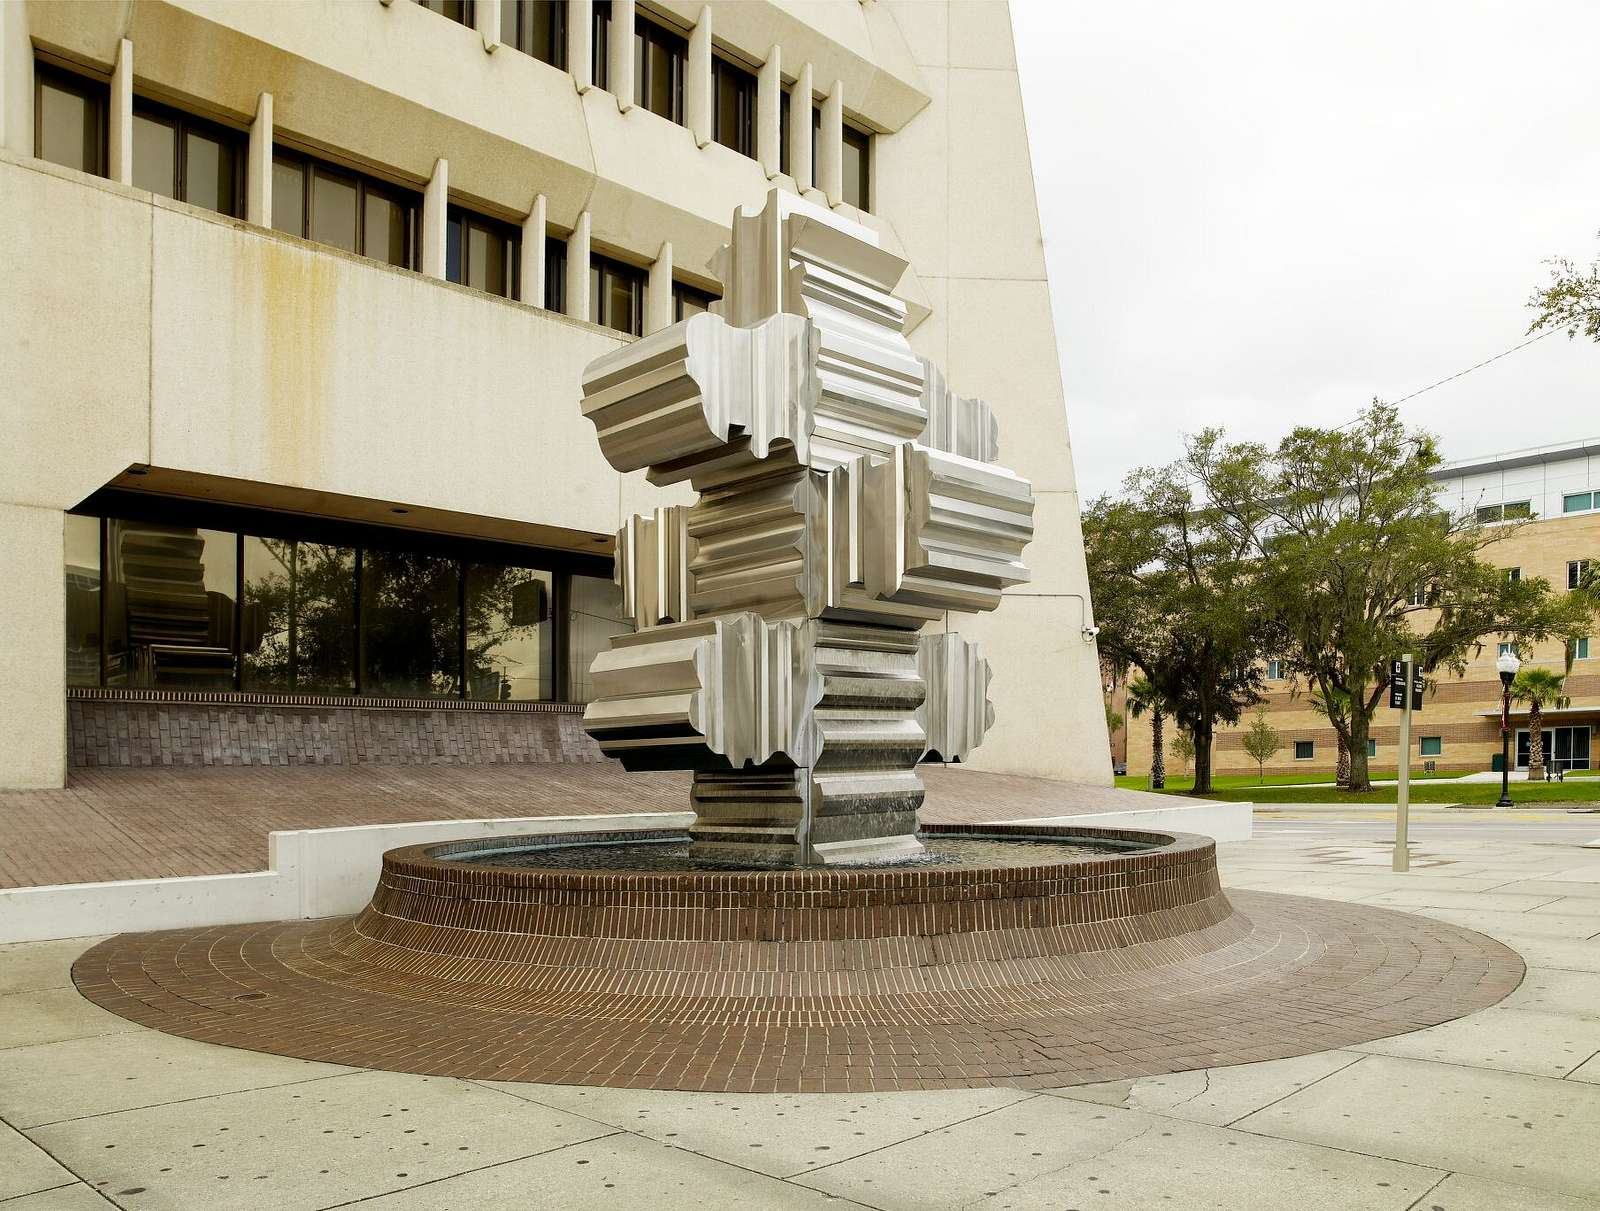 """Sculpture """"Artifact"""" located at exterior courtyard of the George C. Young Federal Building and Courthouse, Orlando, Florida"""